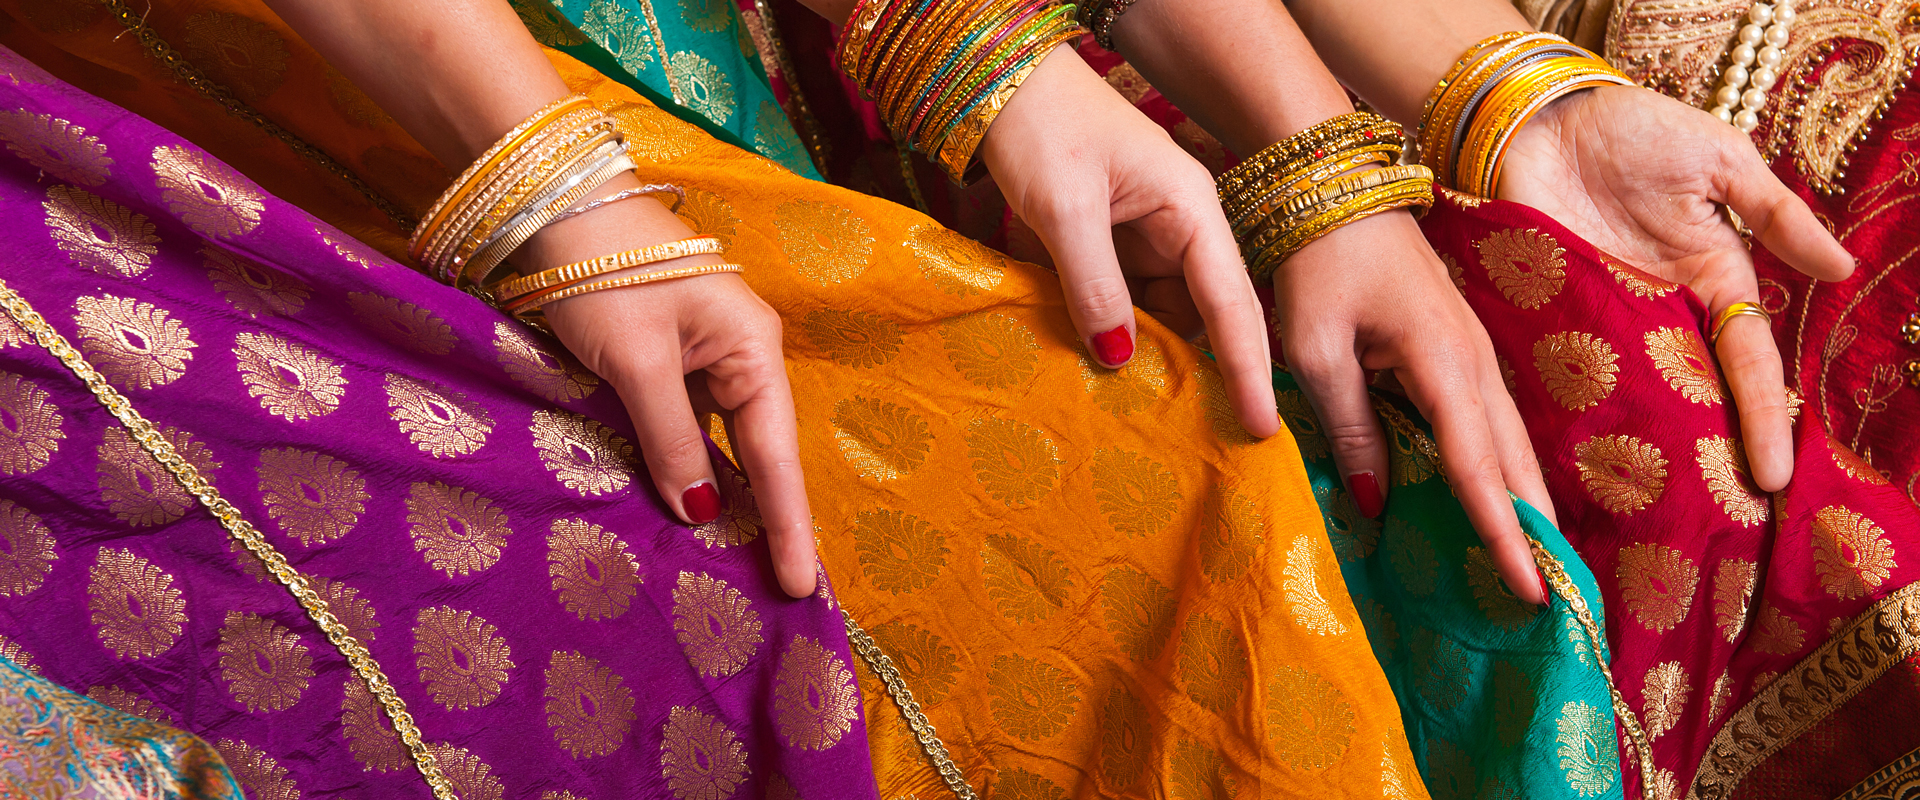 Inde | Saris colorés